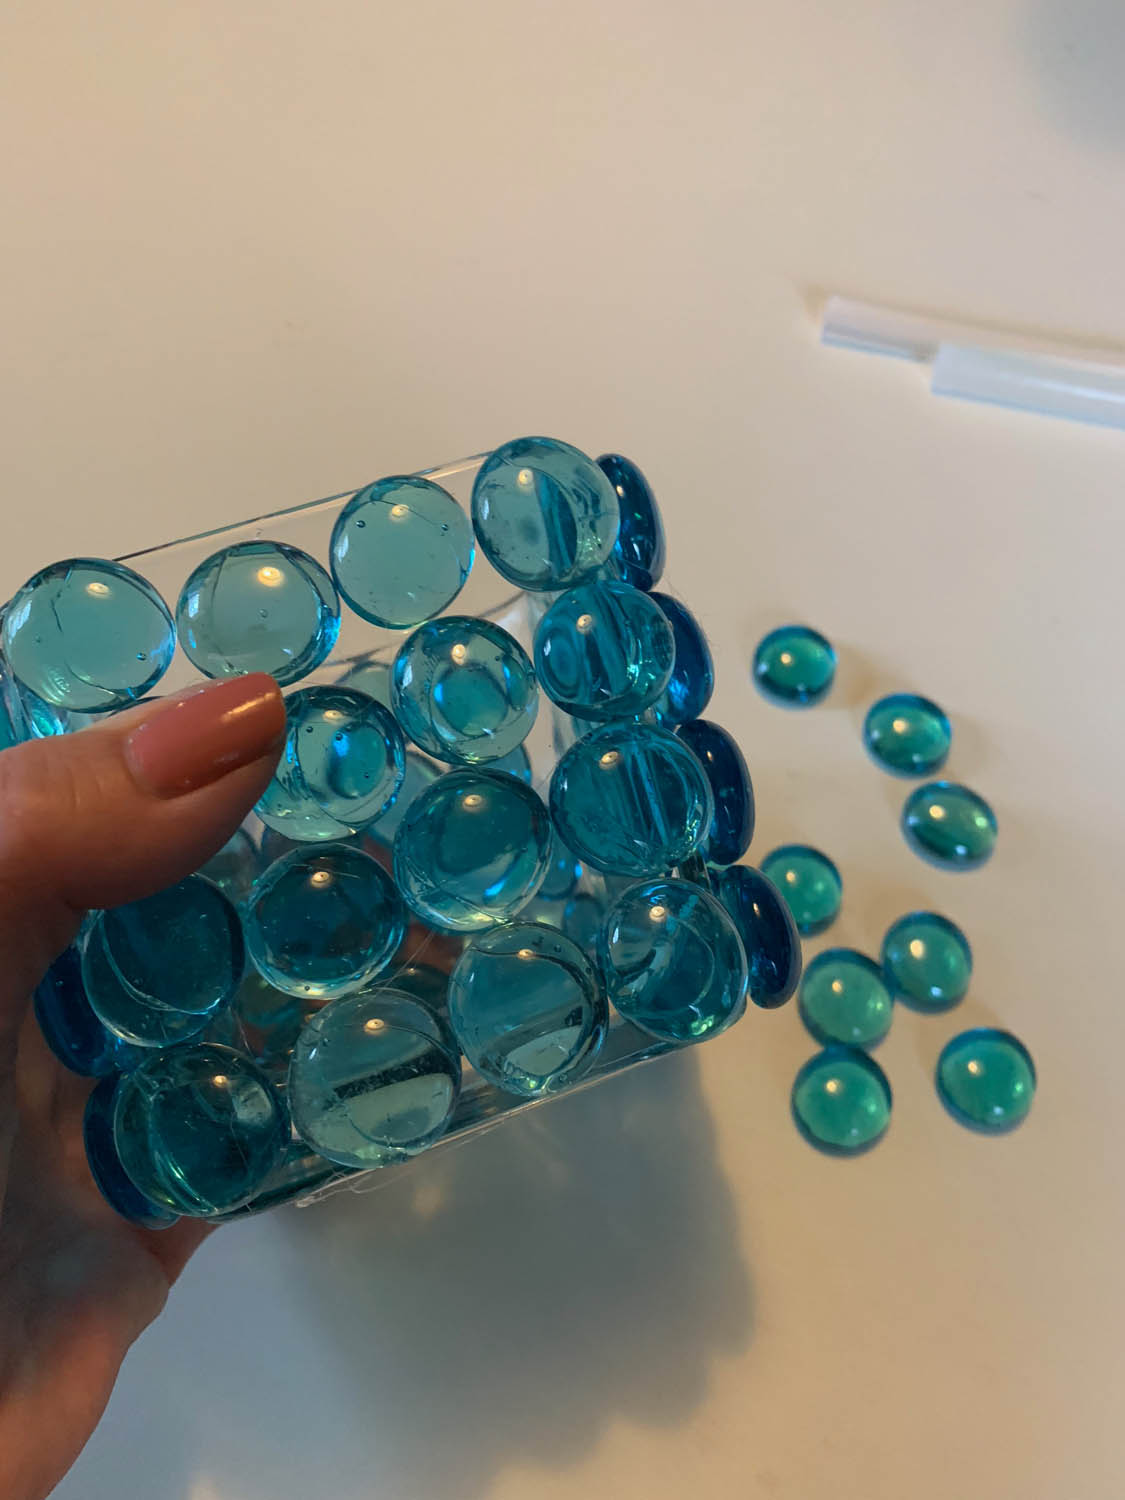 hand holding dollar store glass vase covered with flat-bottom blue marbles applied with a hot glue gun